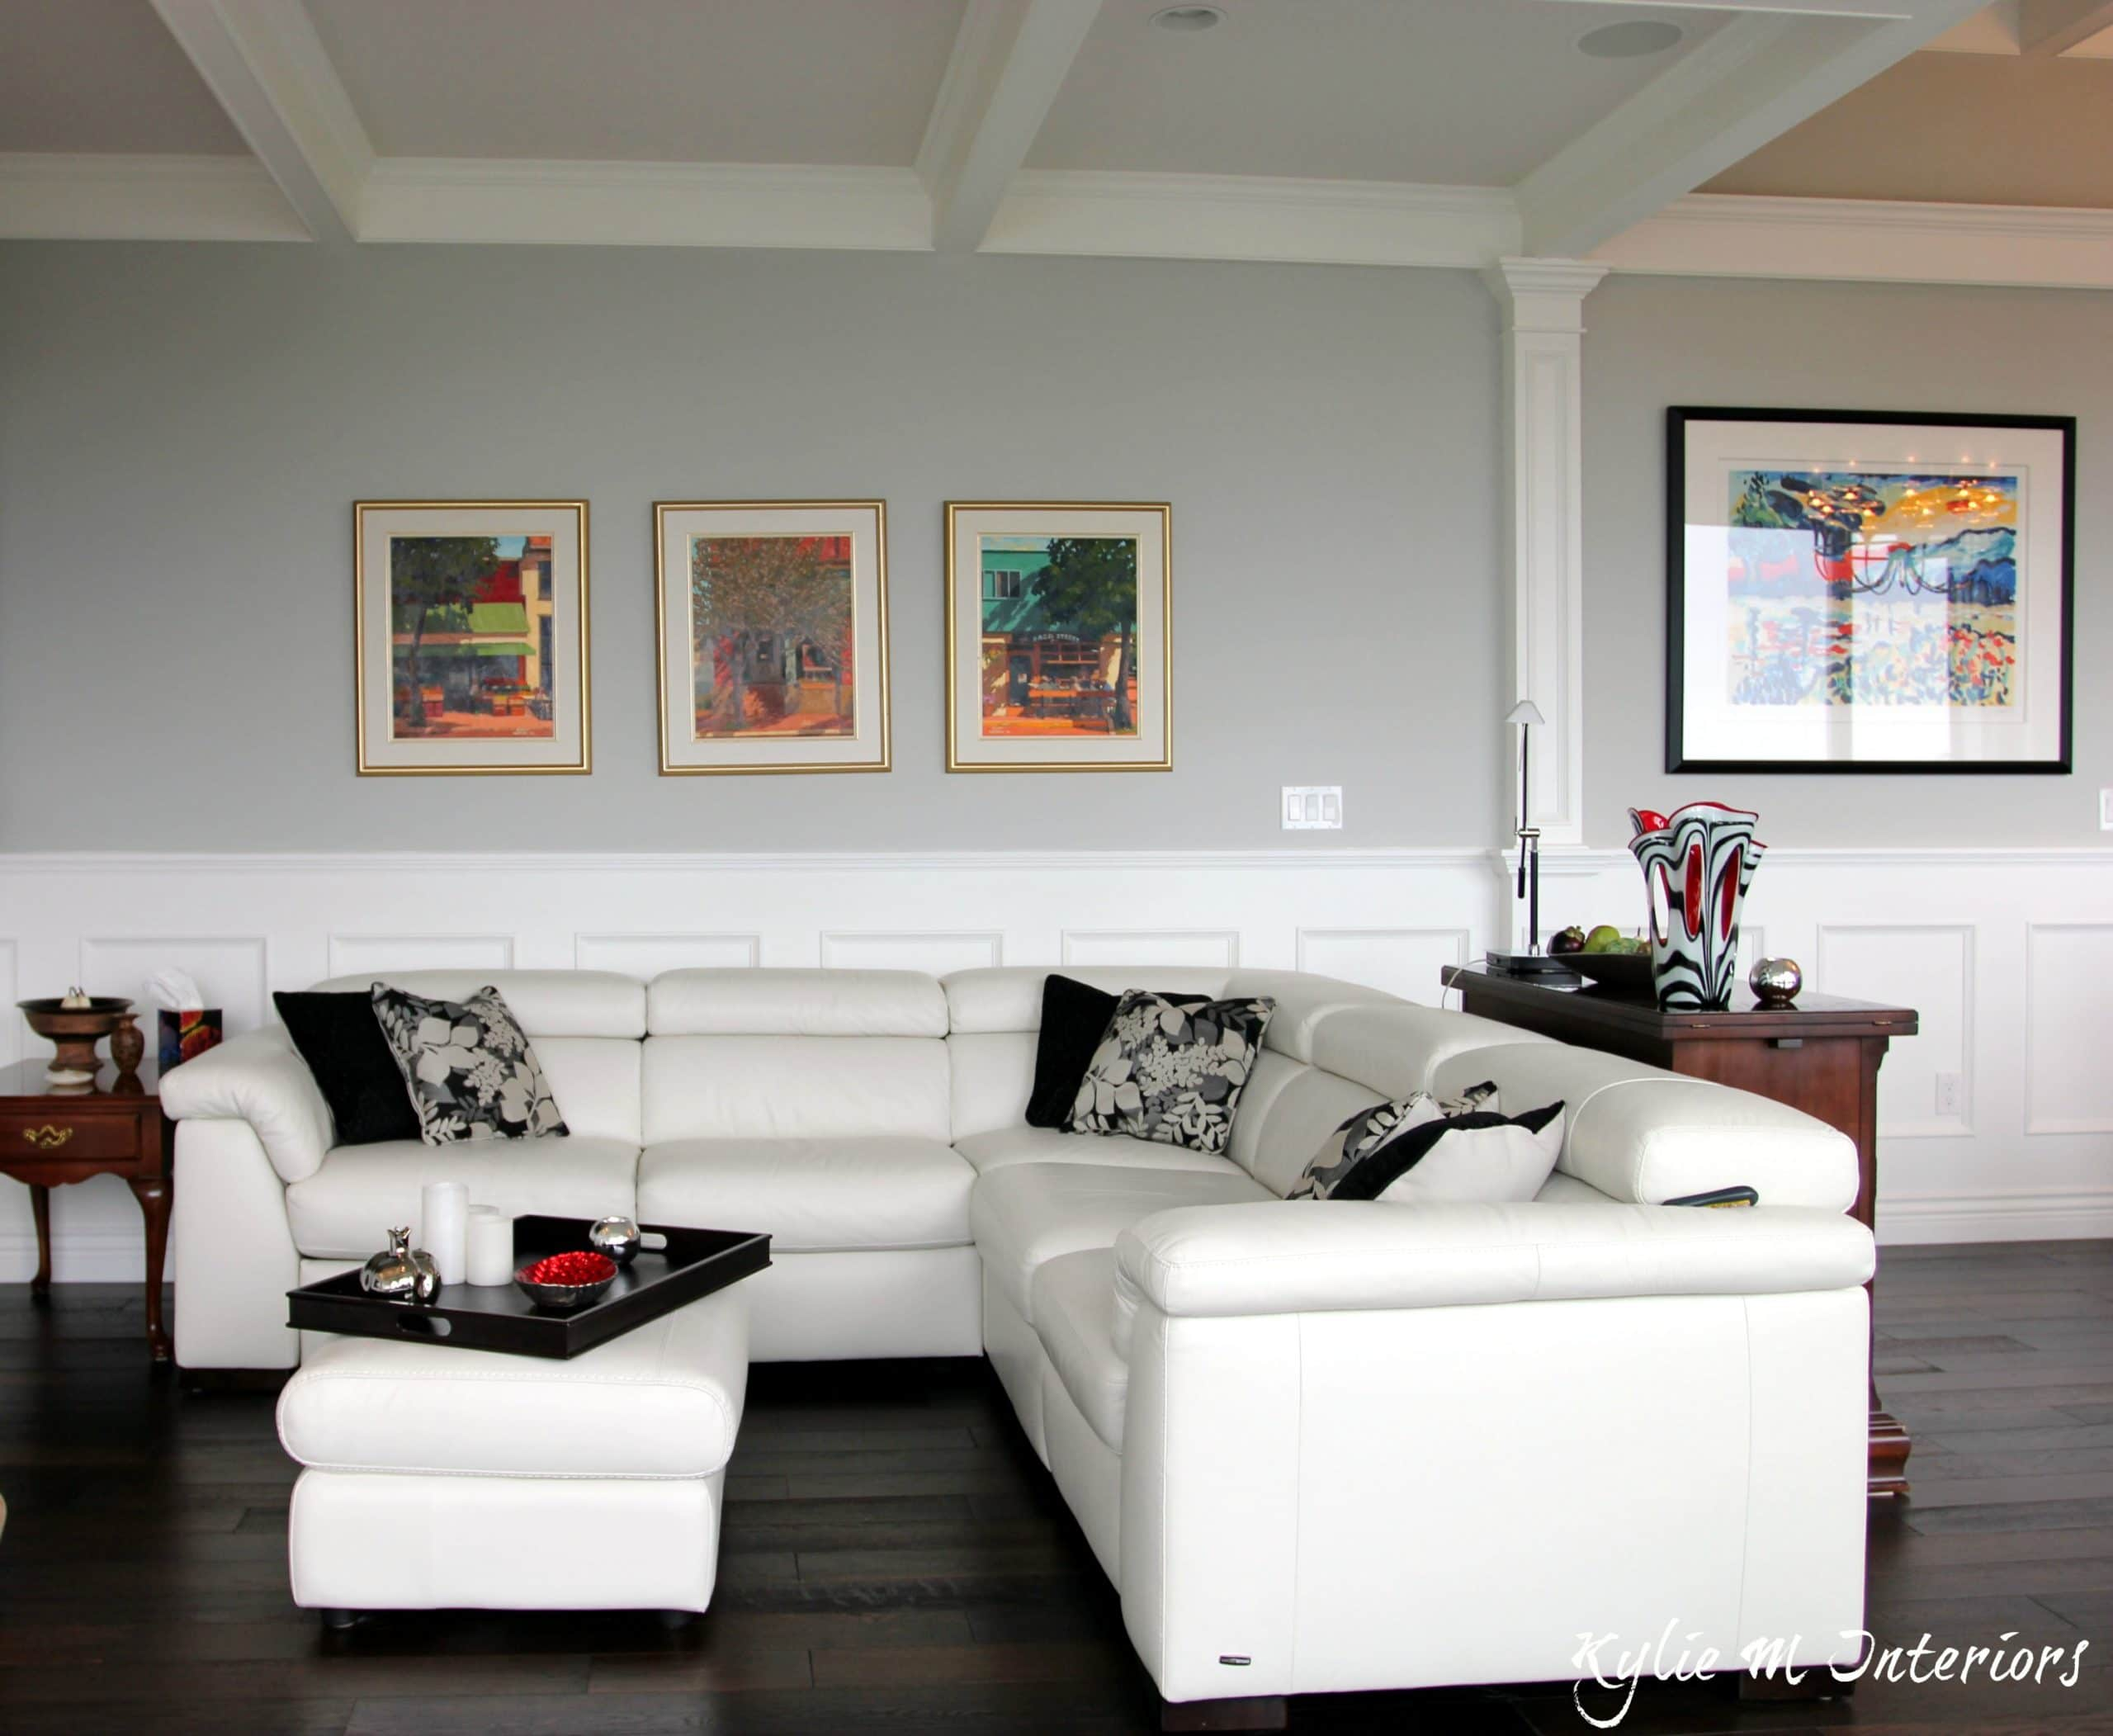 Best benjamin moore gray paint color stonington gray shown Paint colors that go with grey flooring